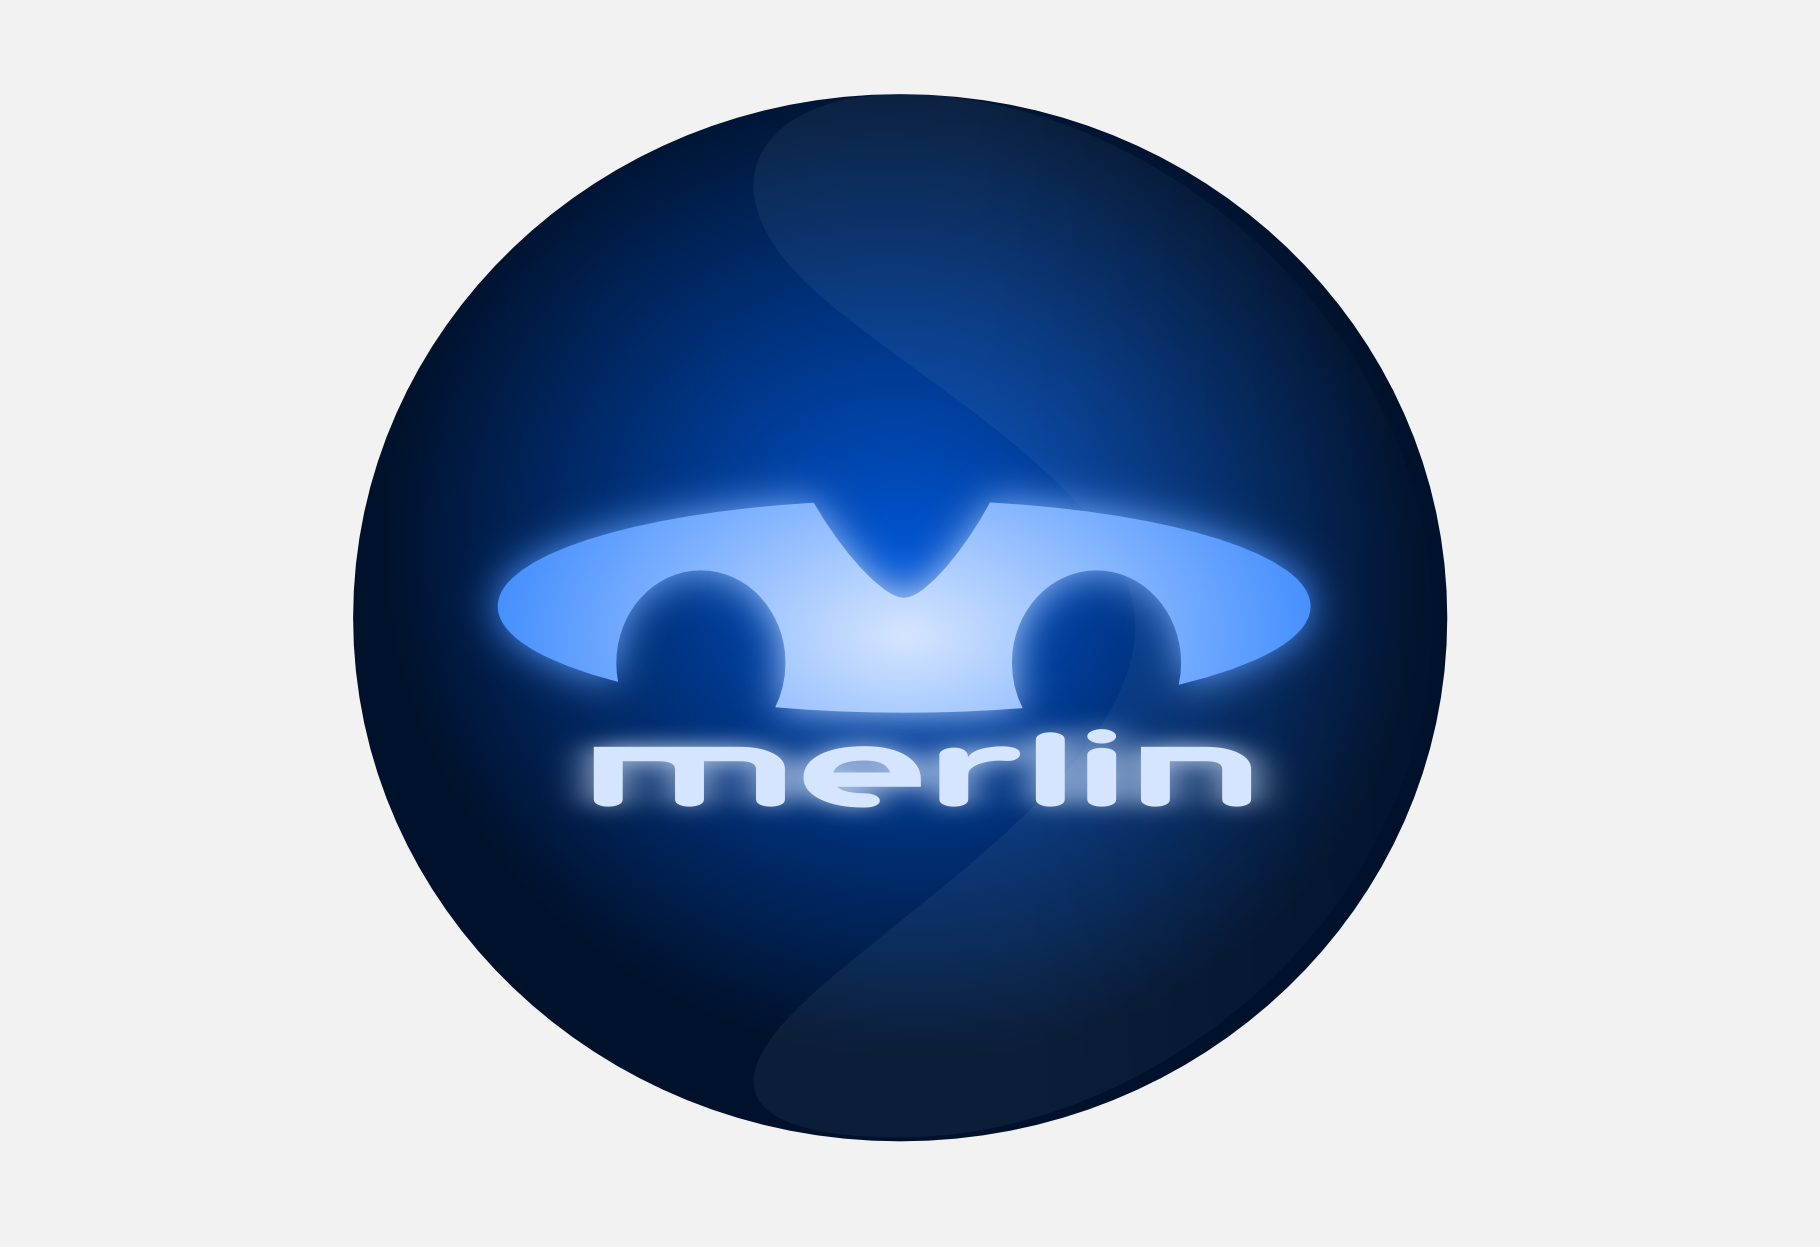 Logo Design by Arindam Khanda - Entry No. 148 in the Logo Design Contest Imaginative Logo Design for Merlin.